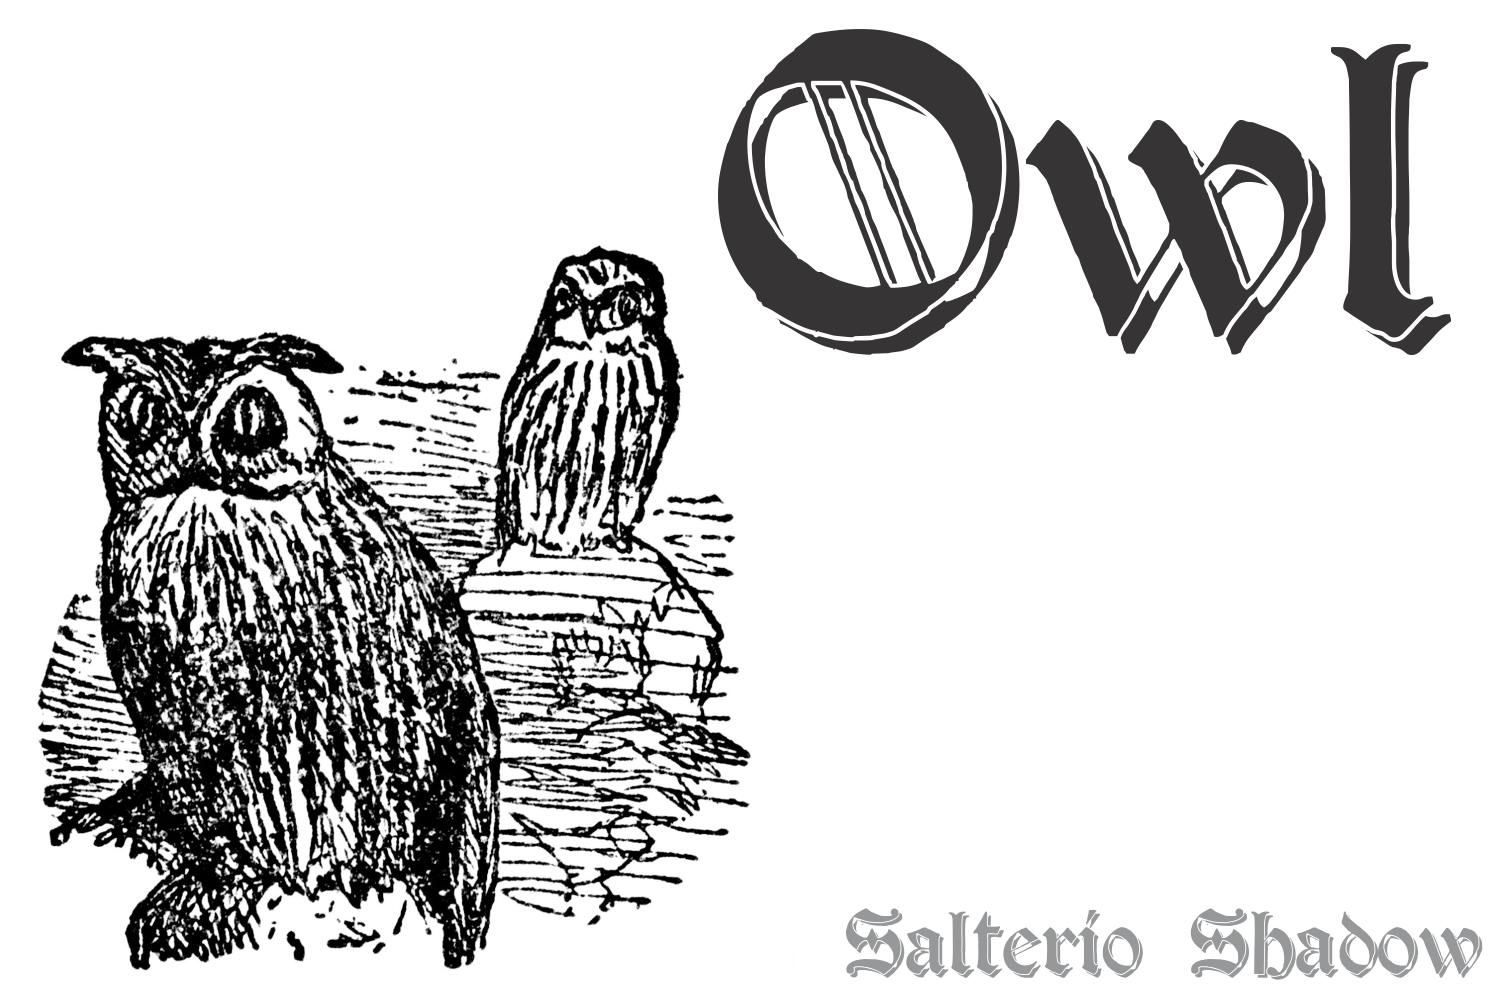 Salterio (six pack fonts) example image 3